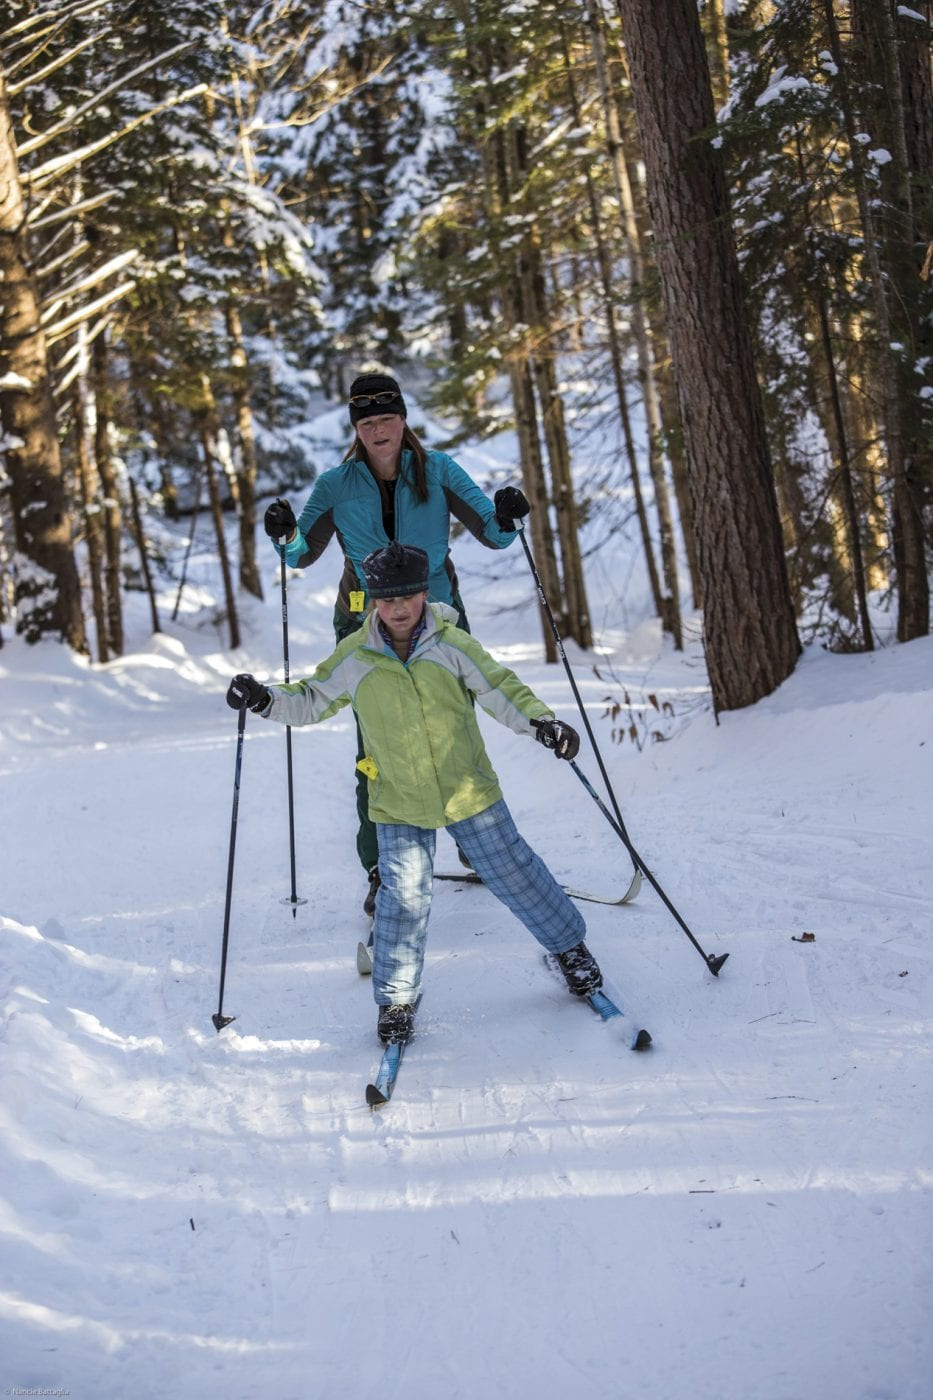 Lapland Lake Ski Touring Center and Resort is one of the many Cross-Country Ski Centers in the Adirondack Park.